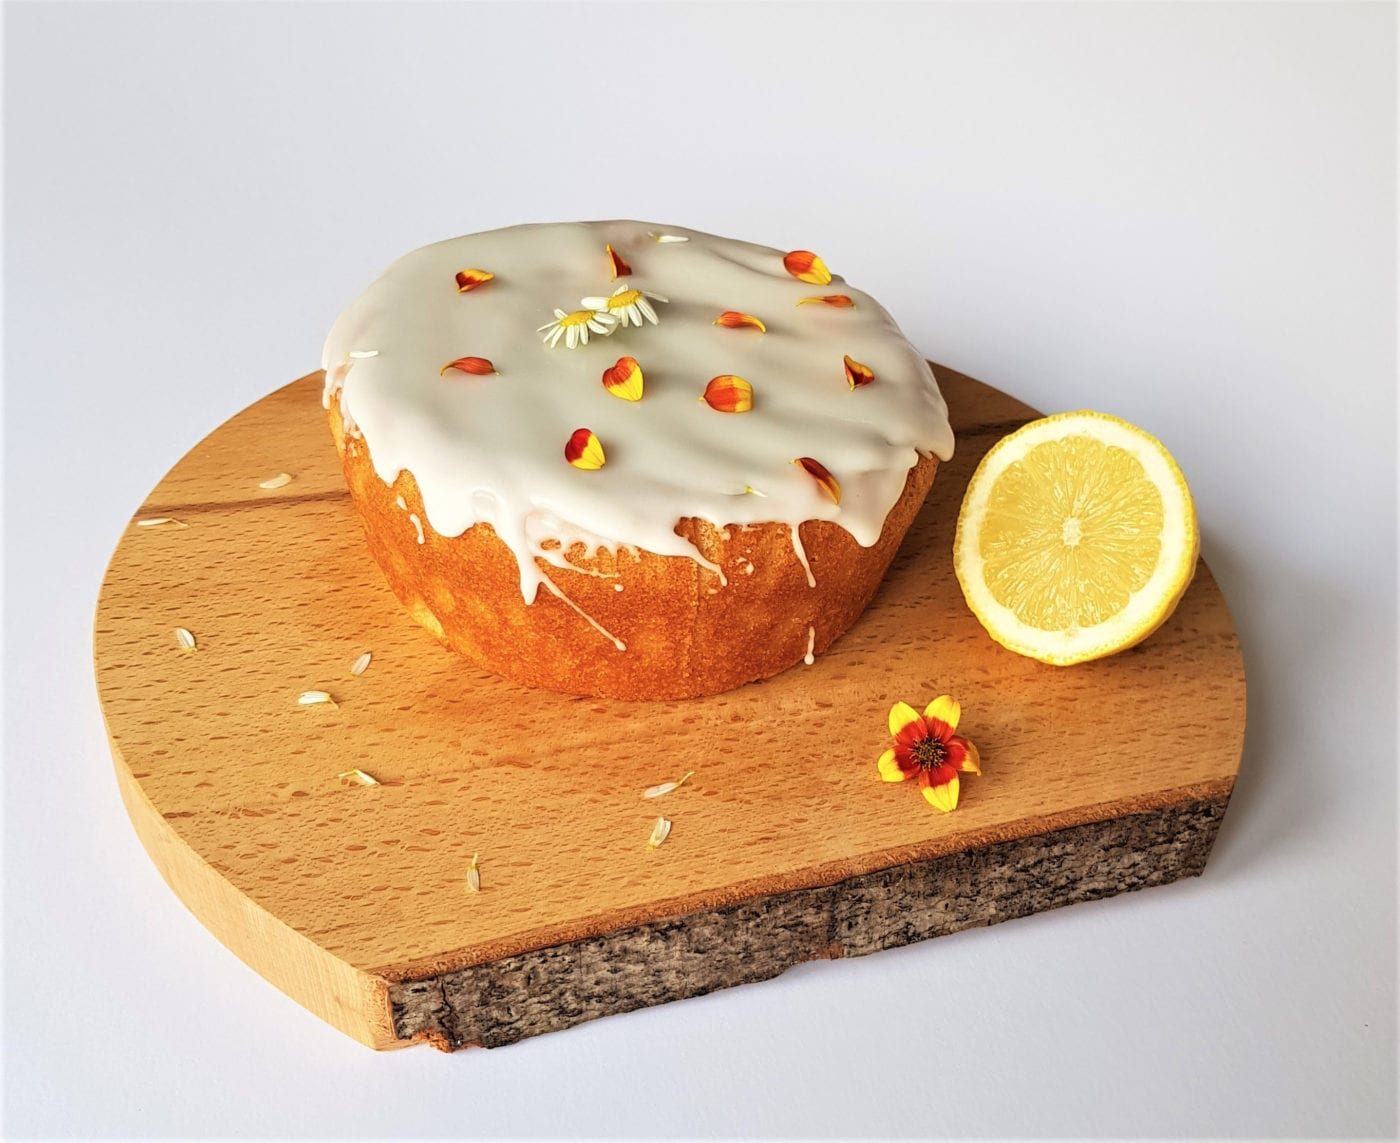 Vegan Lemon and Coconut Drizzle Cake